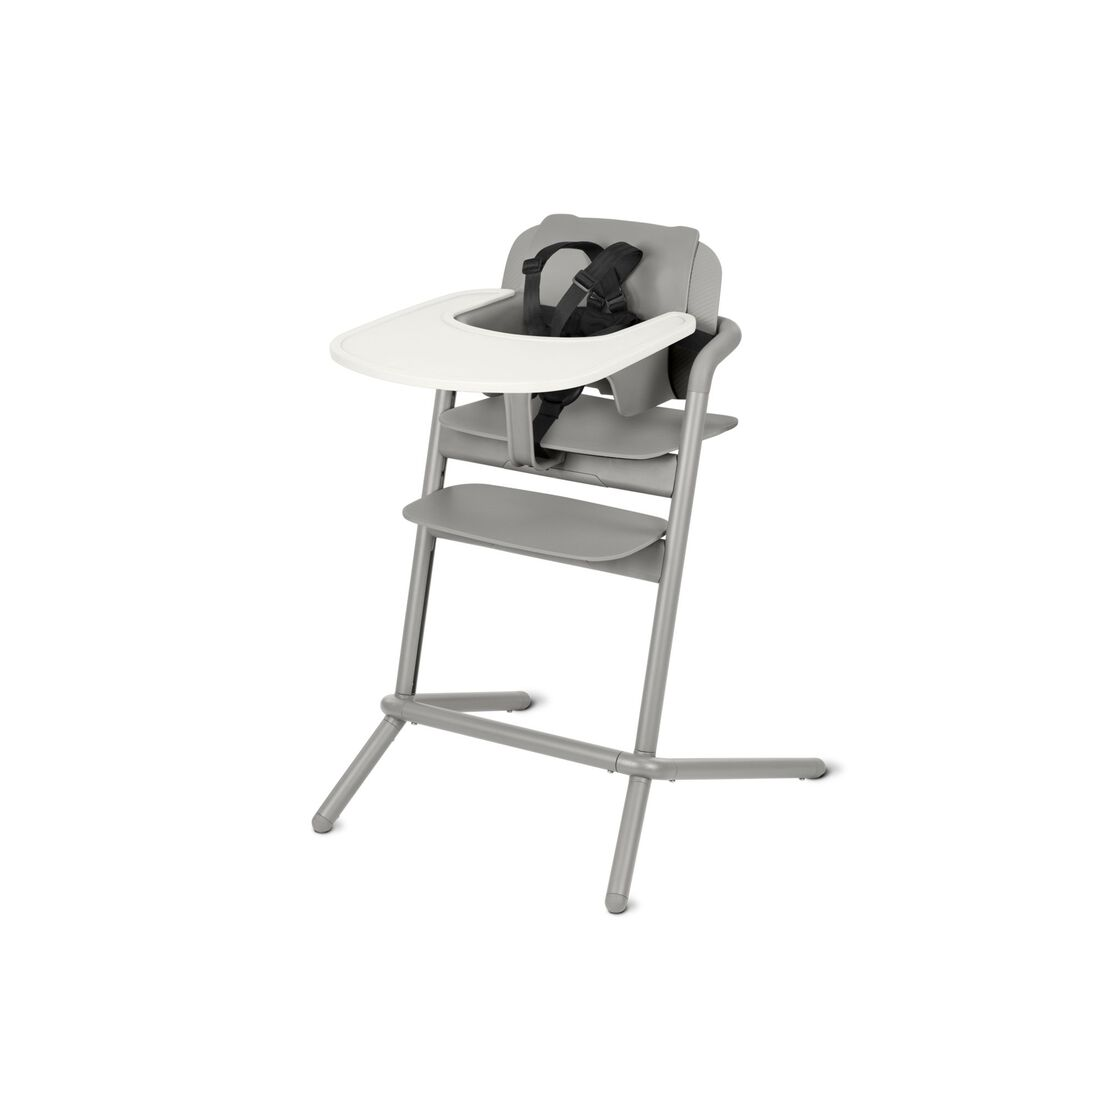 CYBEX Lemo Tray - Porcelaine White in Porcelaine White large Bild 1